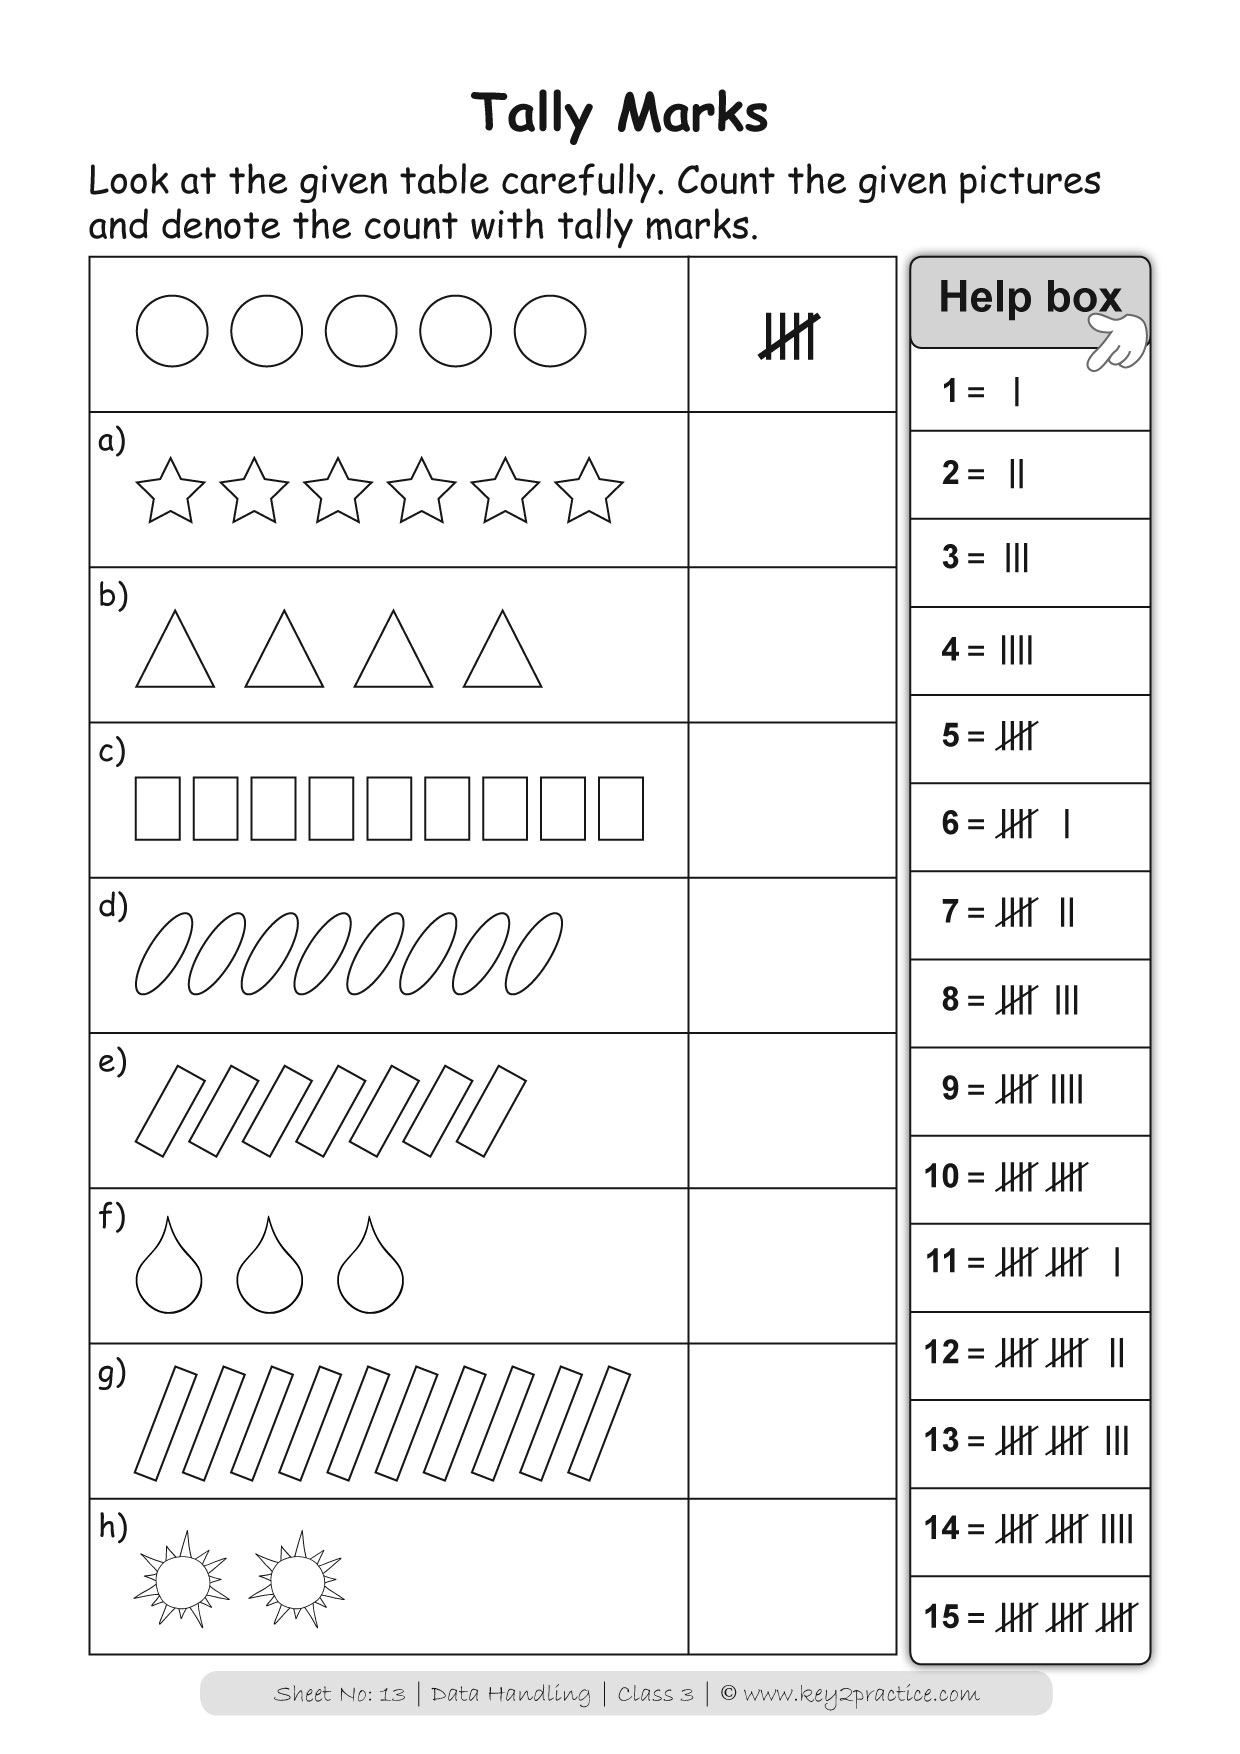 hight resolution of Bar Graph Grade 3 I Maths Worksheets - key2practice Workbooks